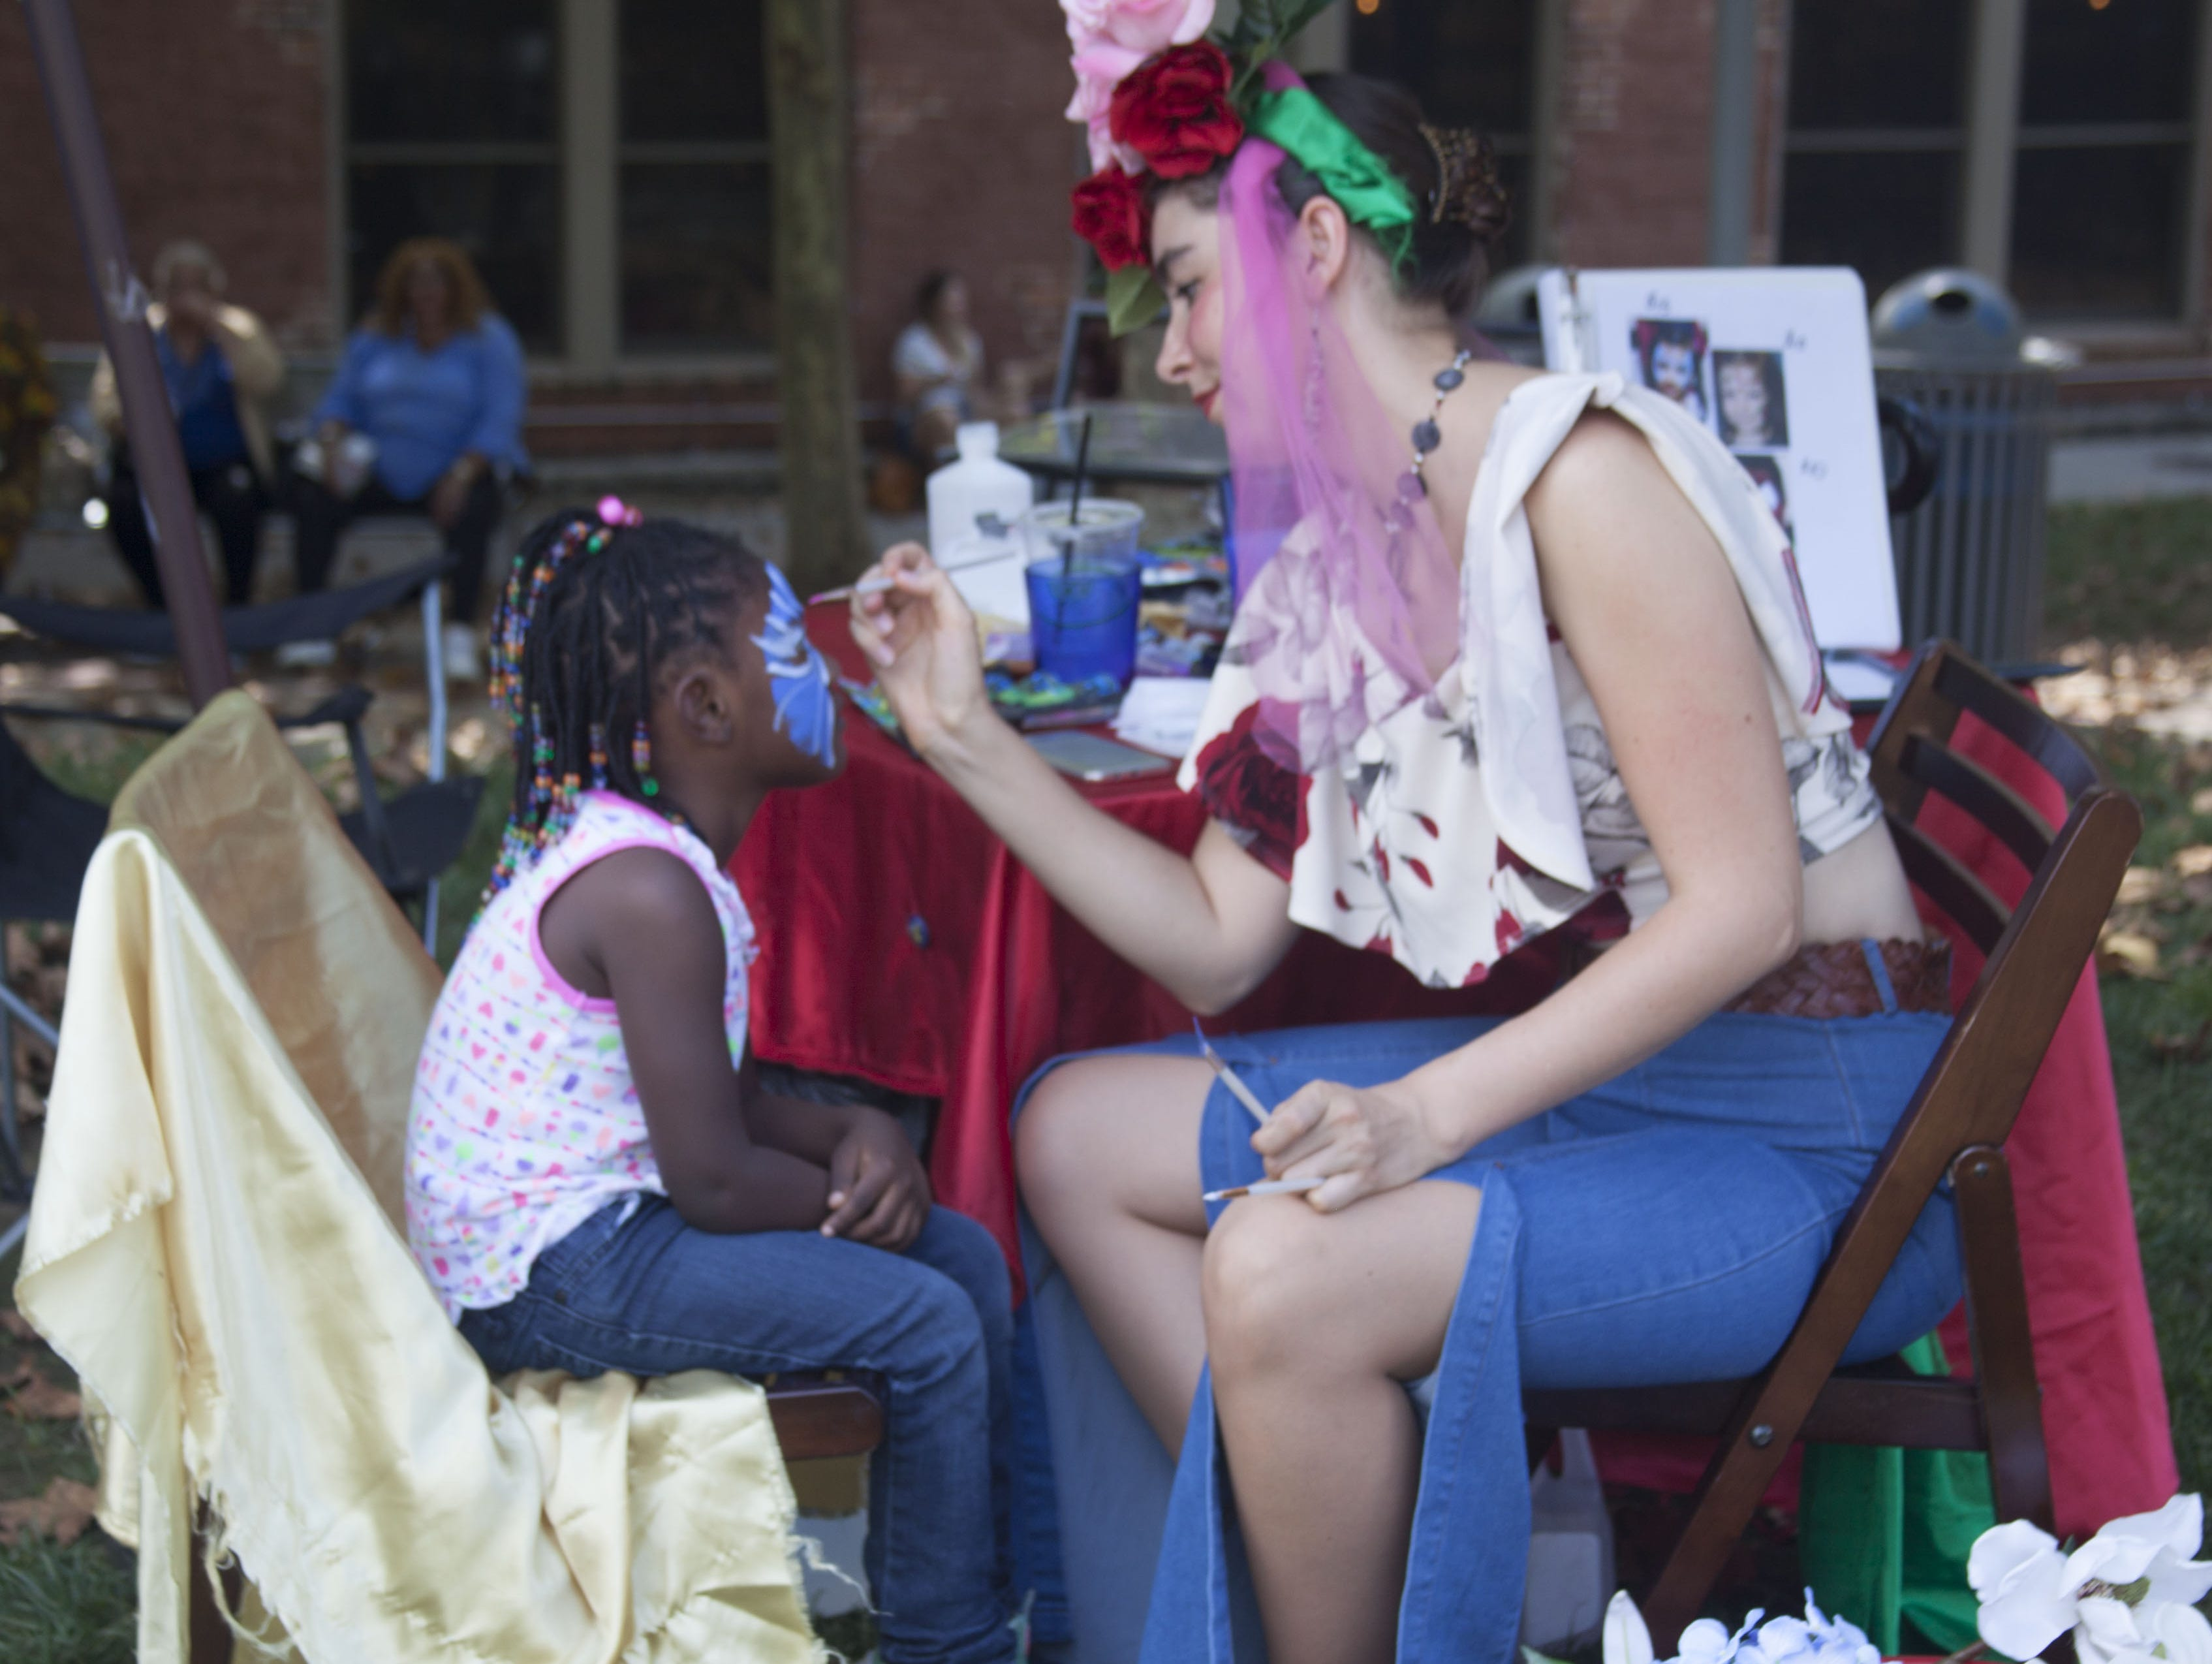 Bonnie Rockwood of The Lady in Red Art paints faces at 2018 Goombay Festival at the Roger McGuire Green in Pack Square Park on Sept. 8, 2018.